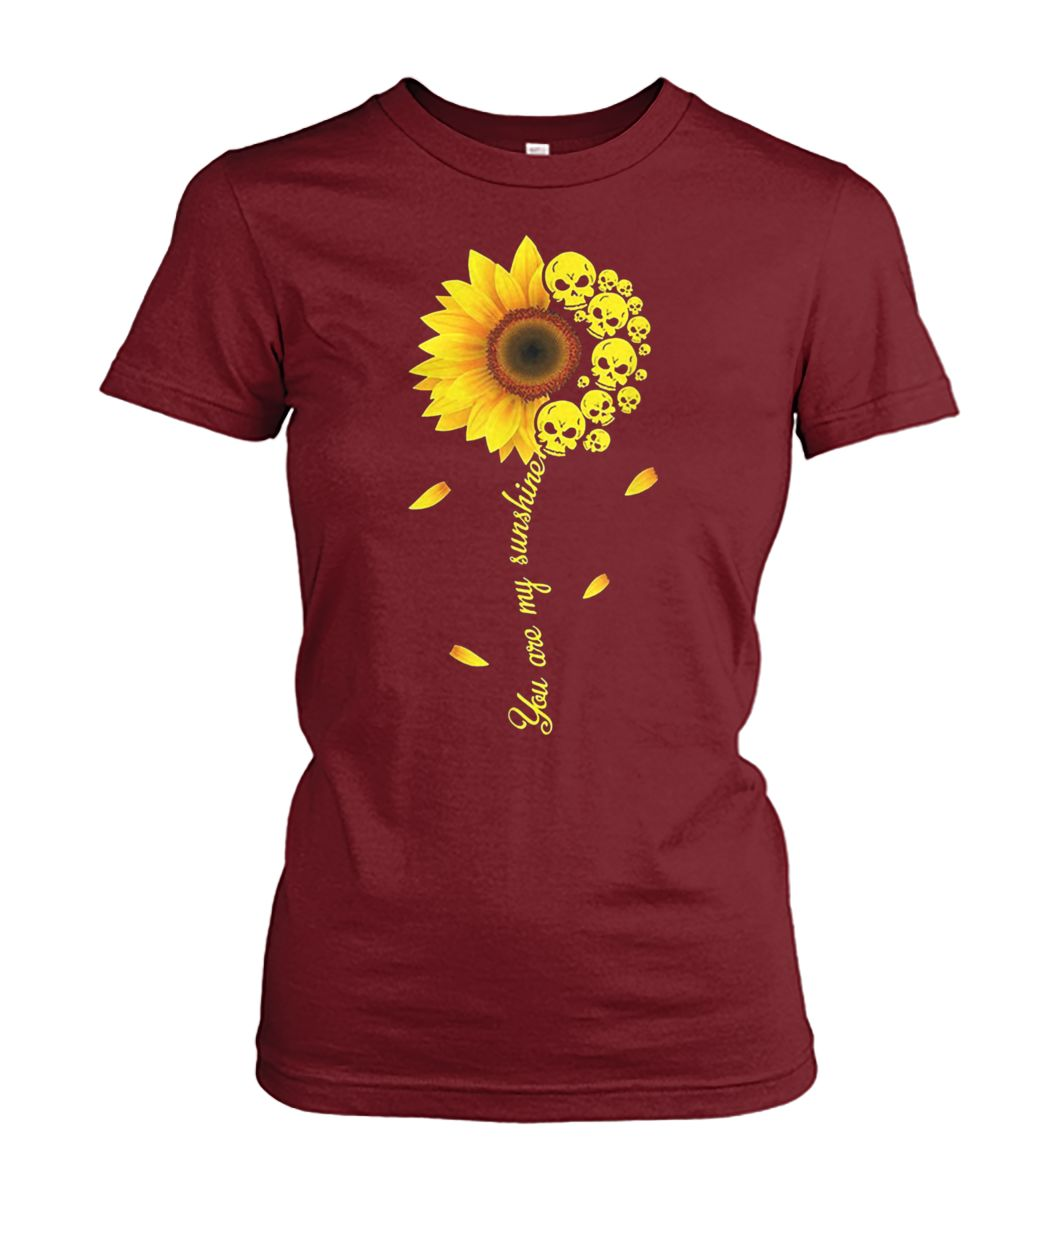 You are my sunshine skull sunflower women's crew tee